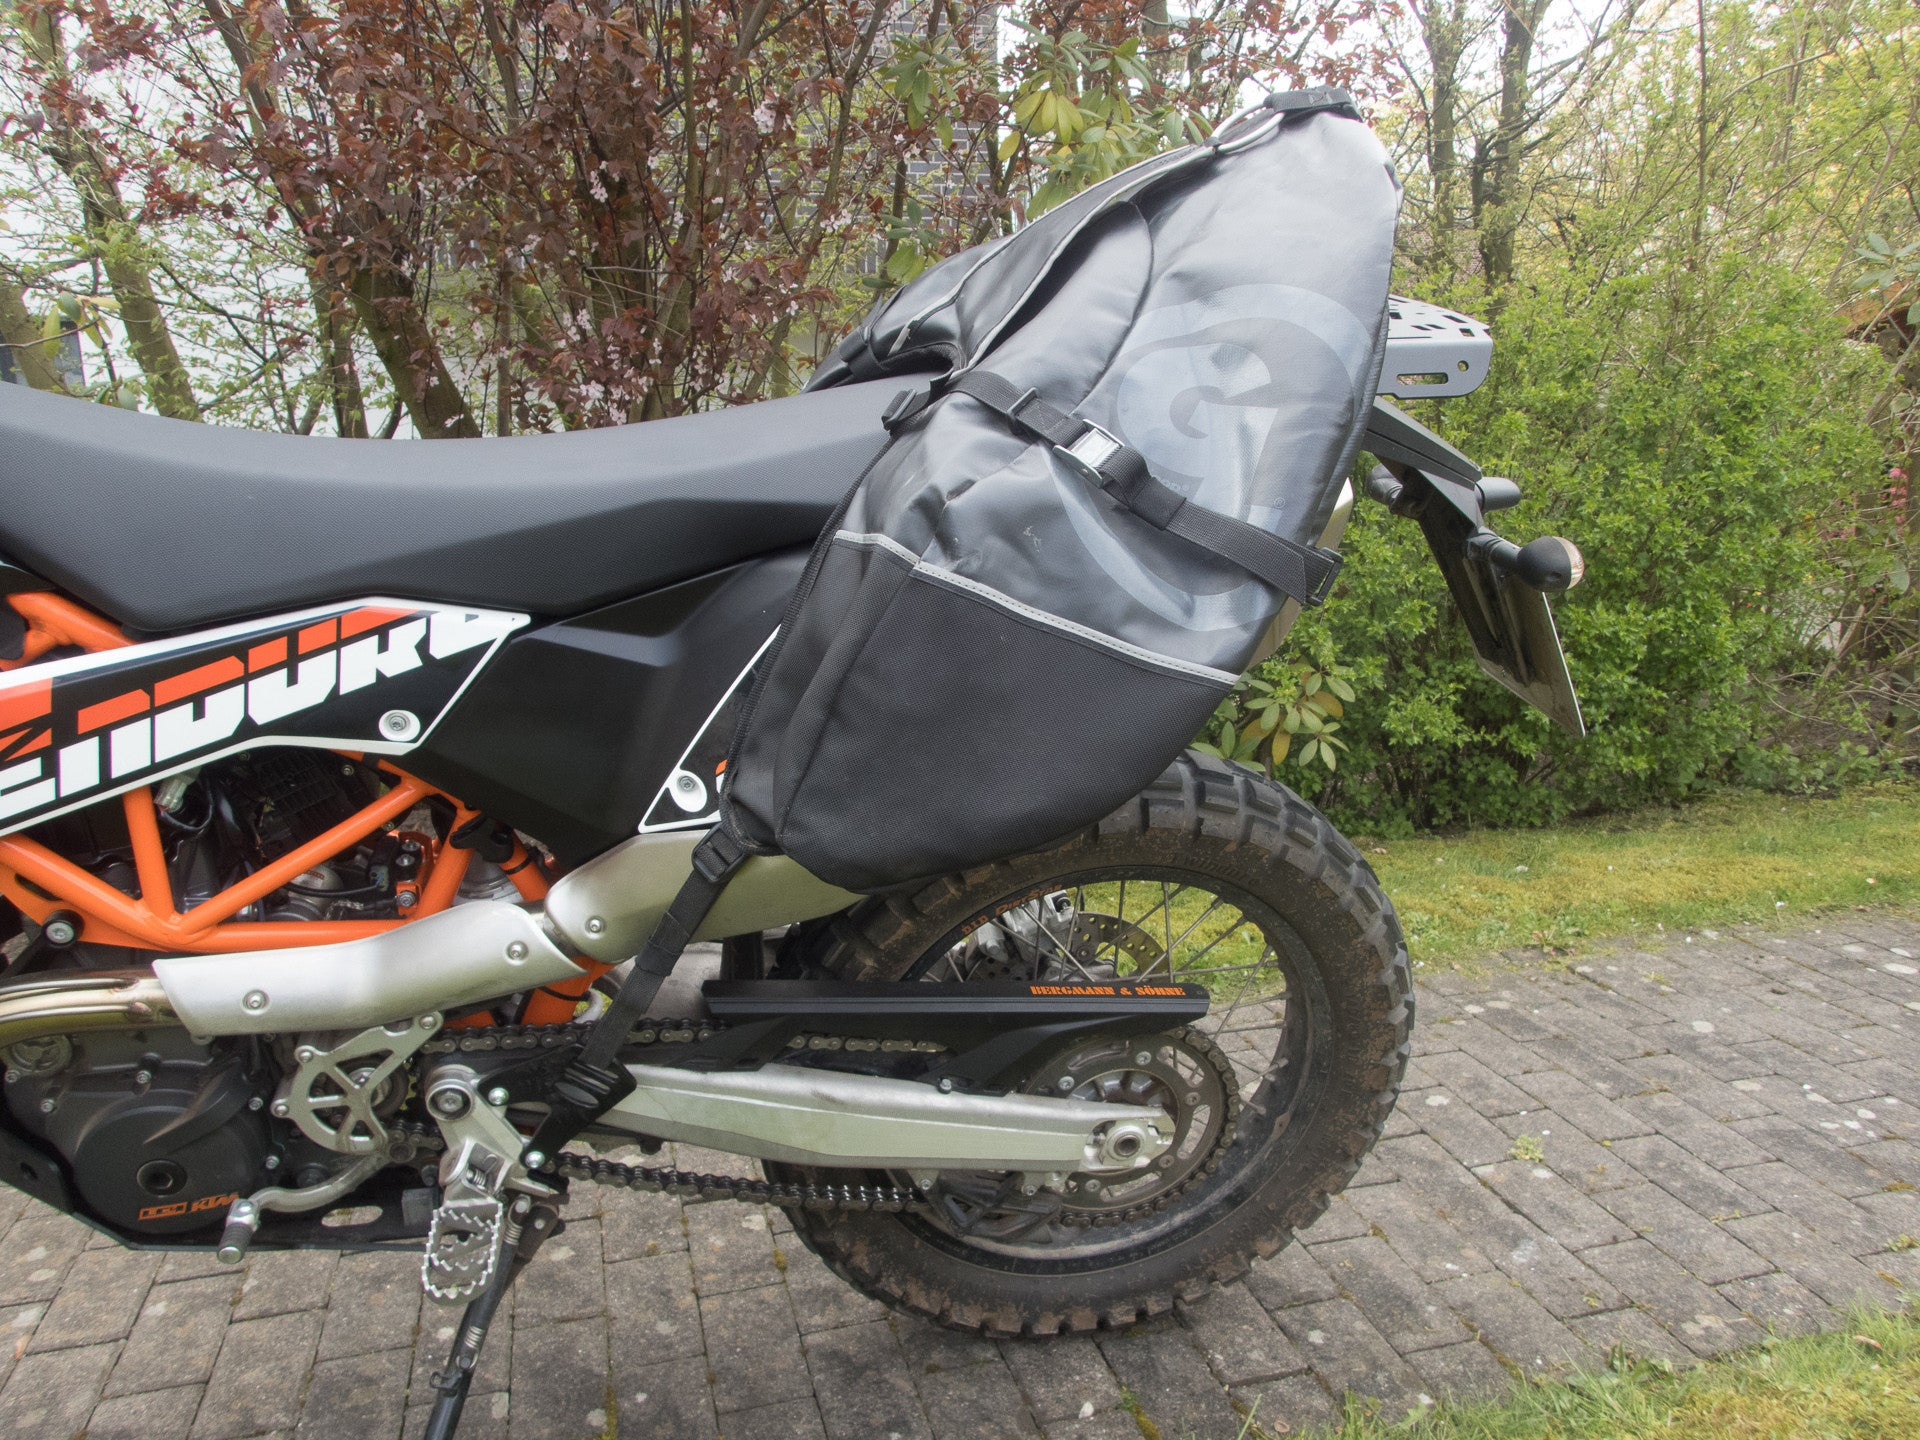 More pictures of Giant Loop Coyote and Perun moto KTM 690 Enduro Luggage rack SD and Heel guards